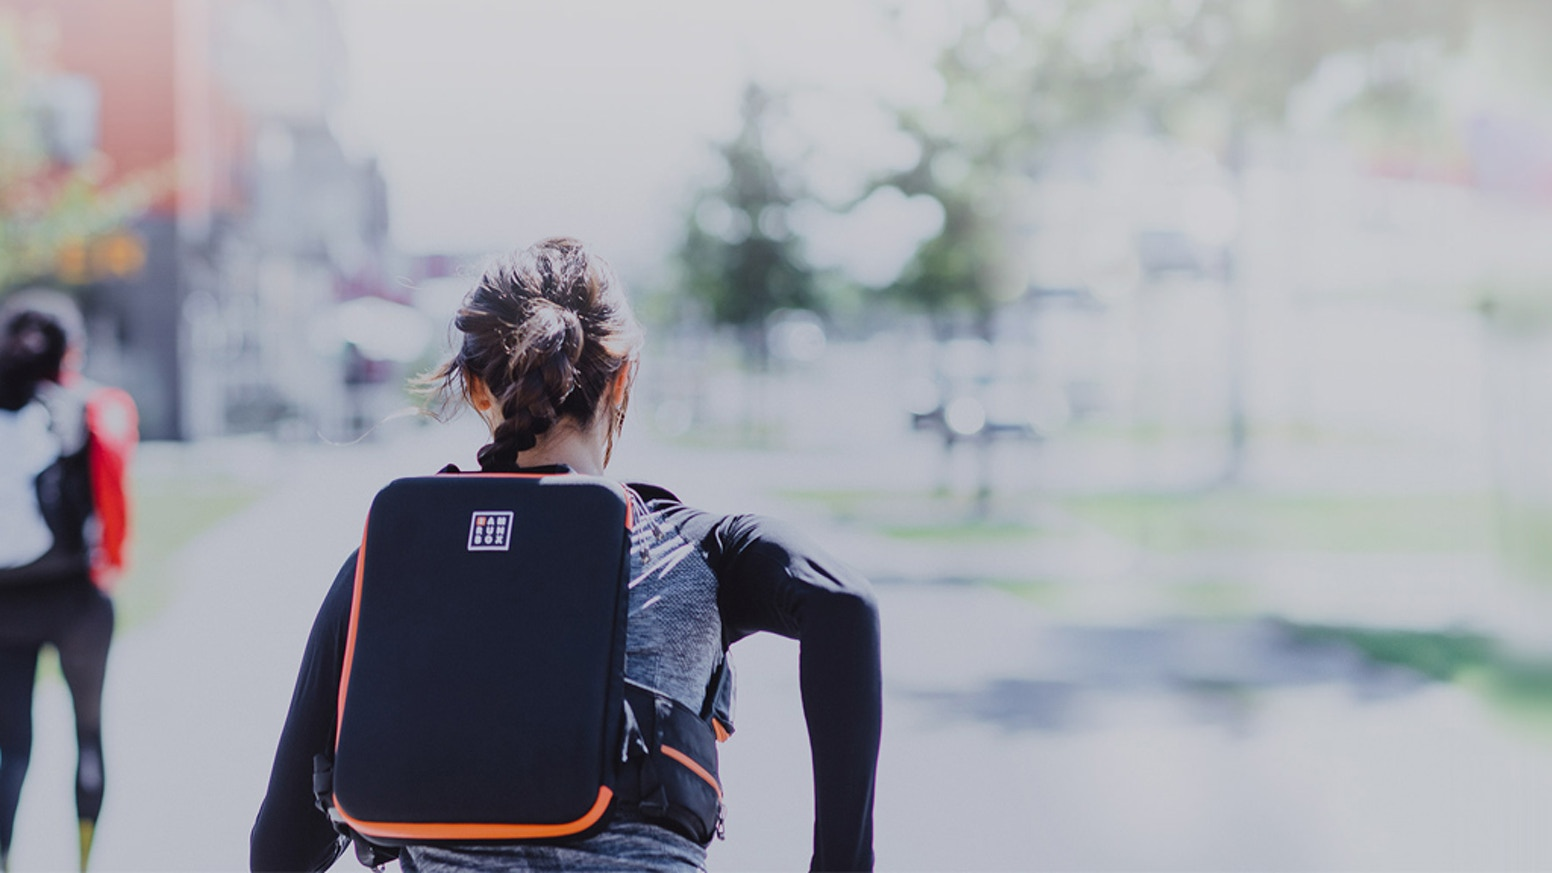 A World's First: the backpack to keep work clothes crease-free whilst you keep active, fit and healthy. The solution for busy lives.